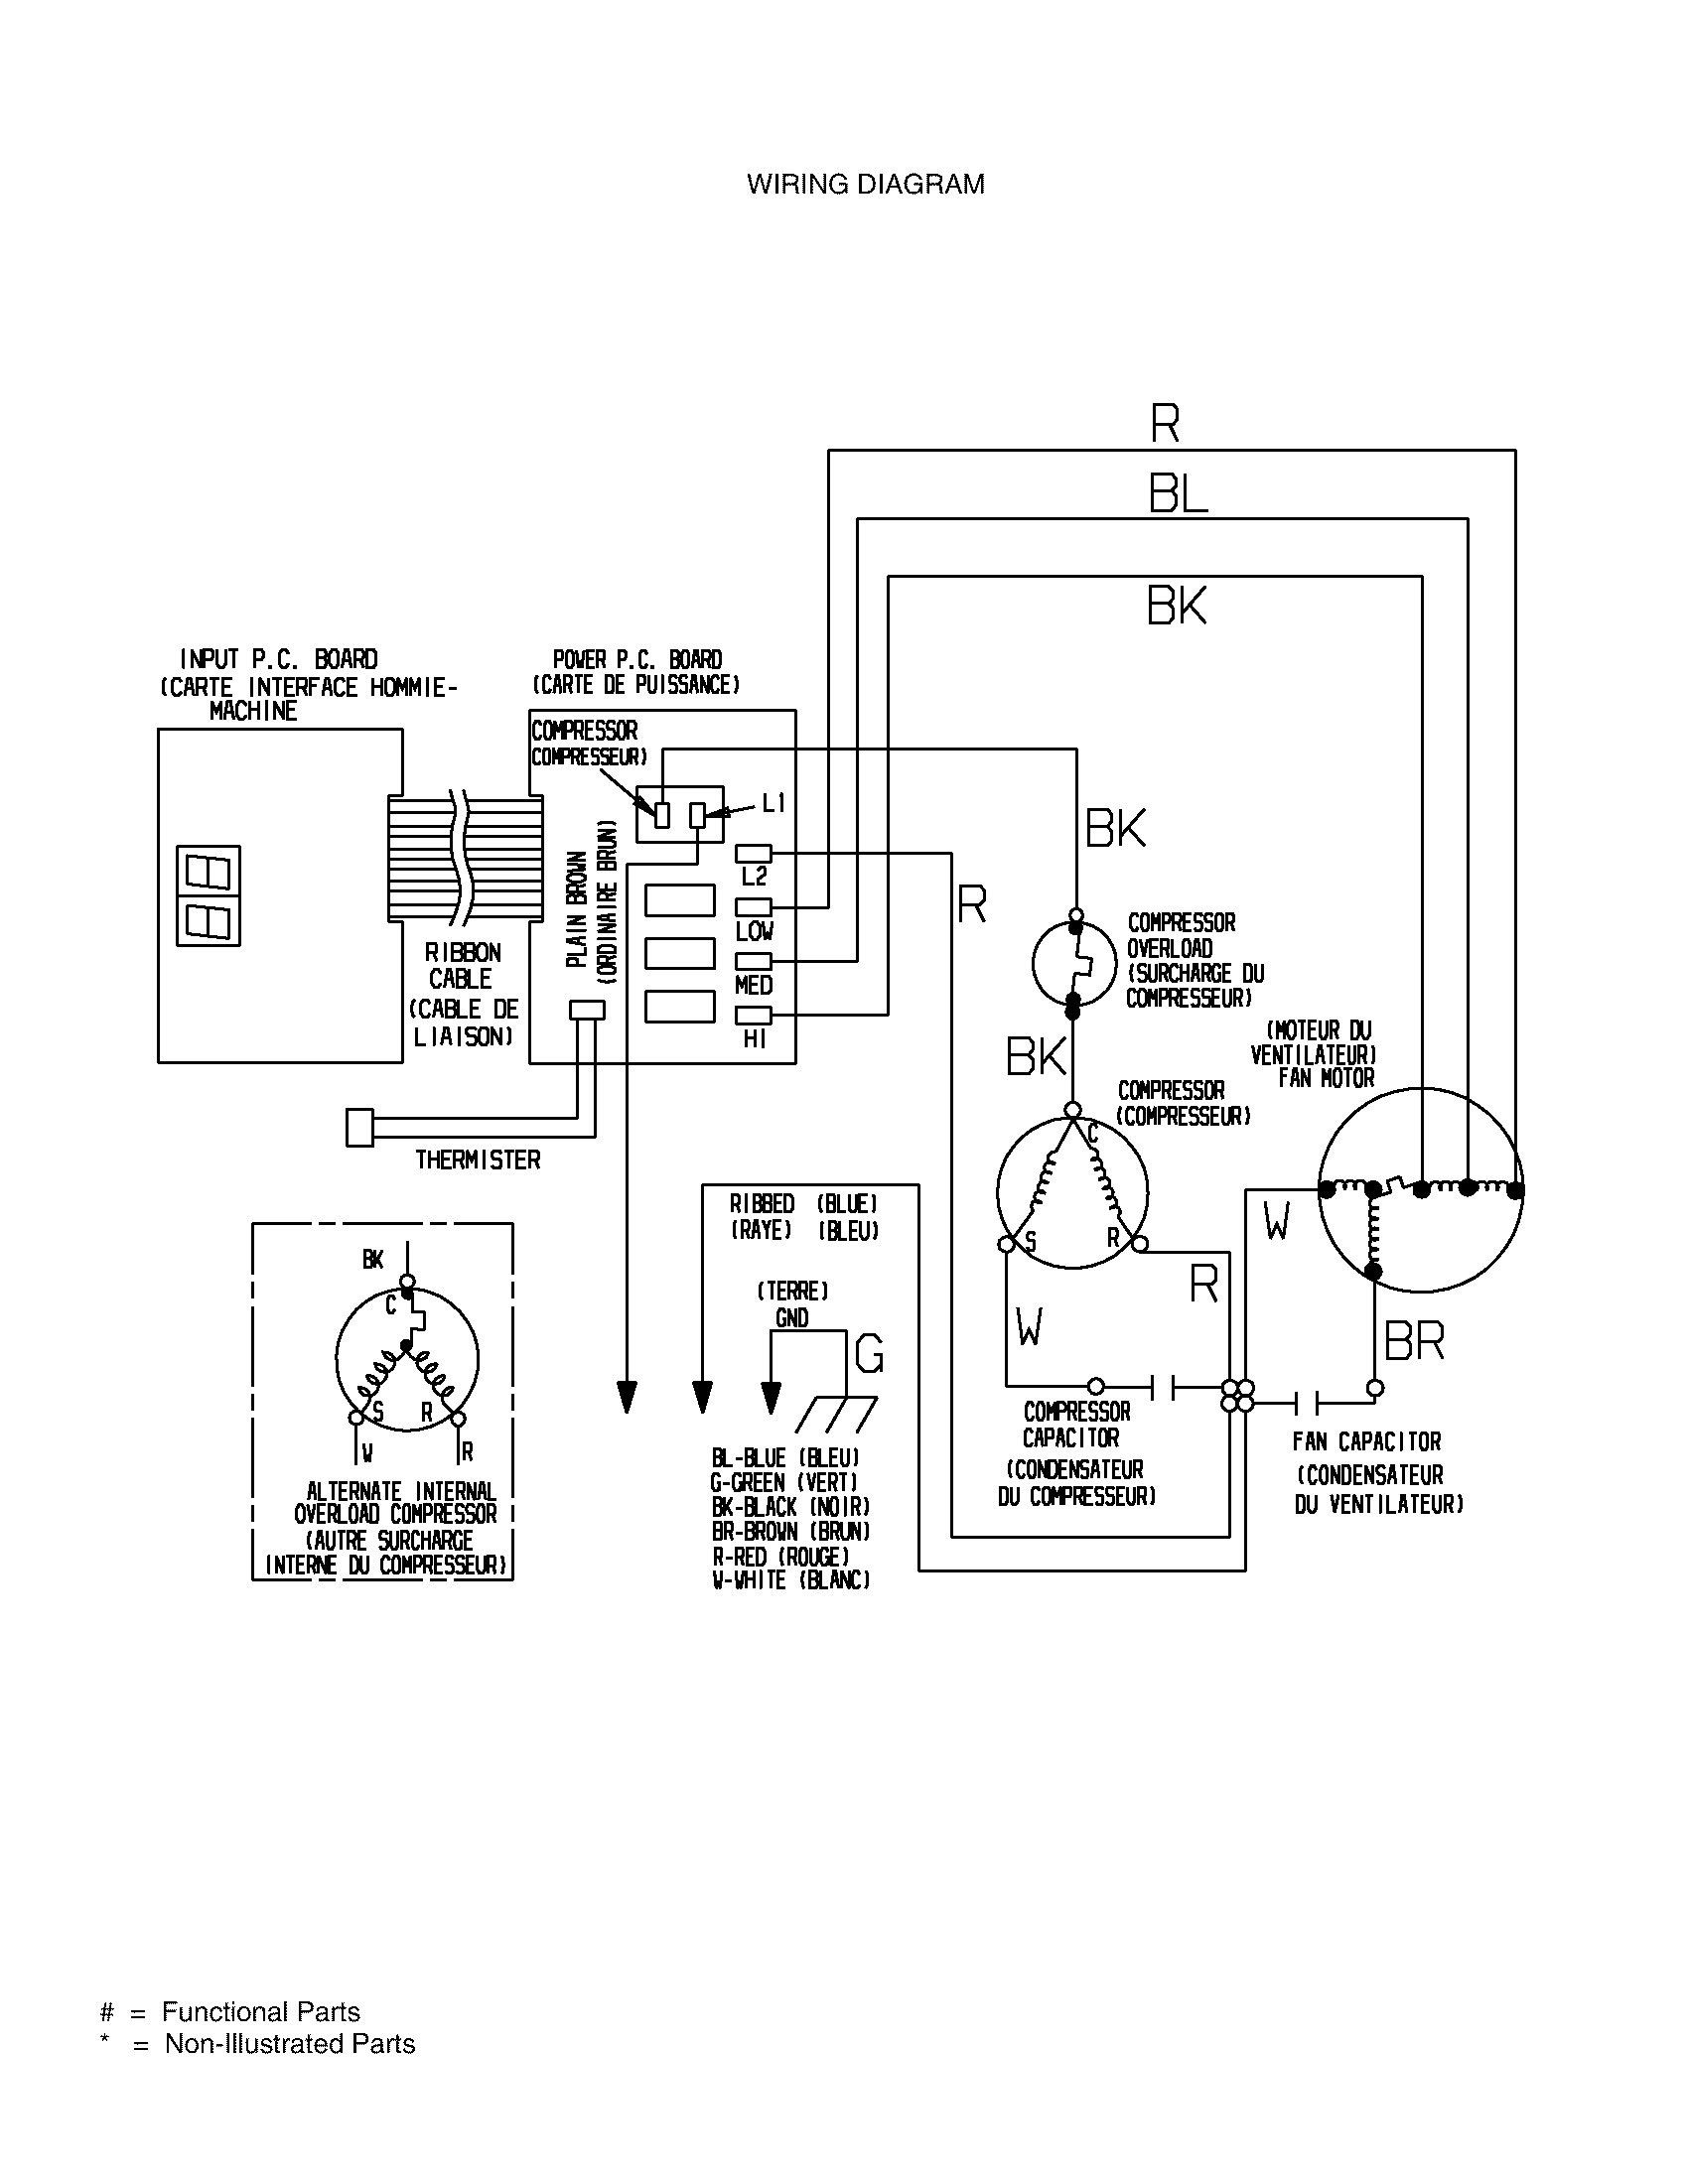 Air Conditioner Wiring Diagram Capacitor in 2020 Diagram